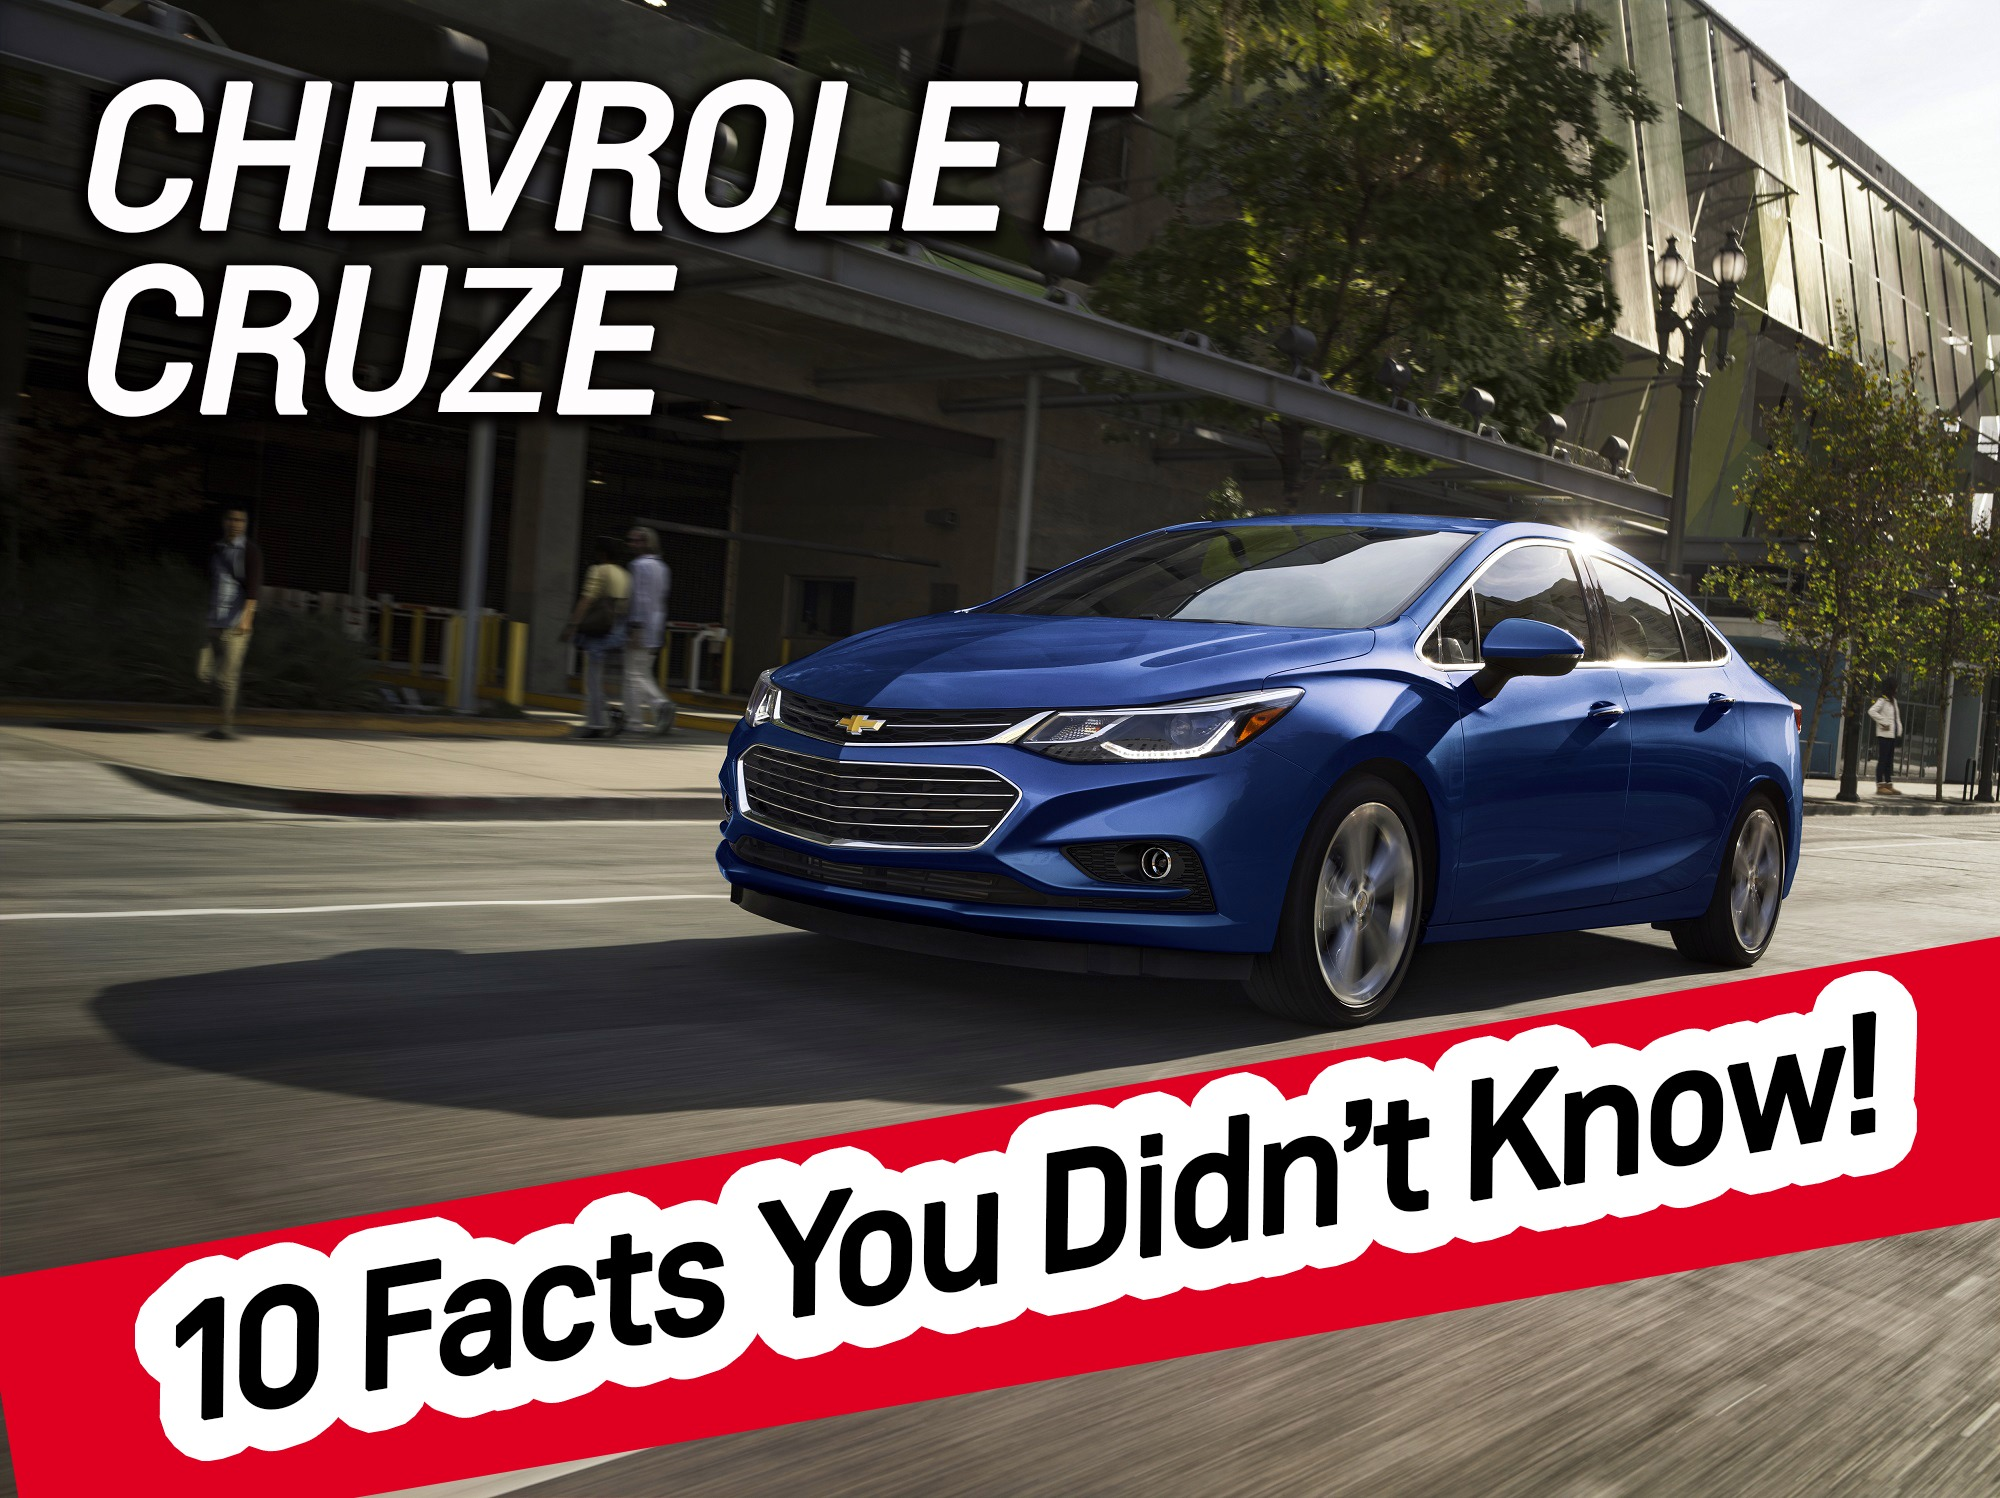 2017 Chevrolet Cruze 10 Facts You Didn T Know